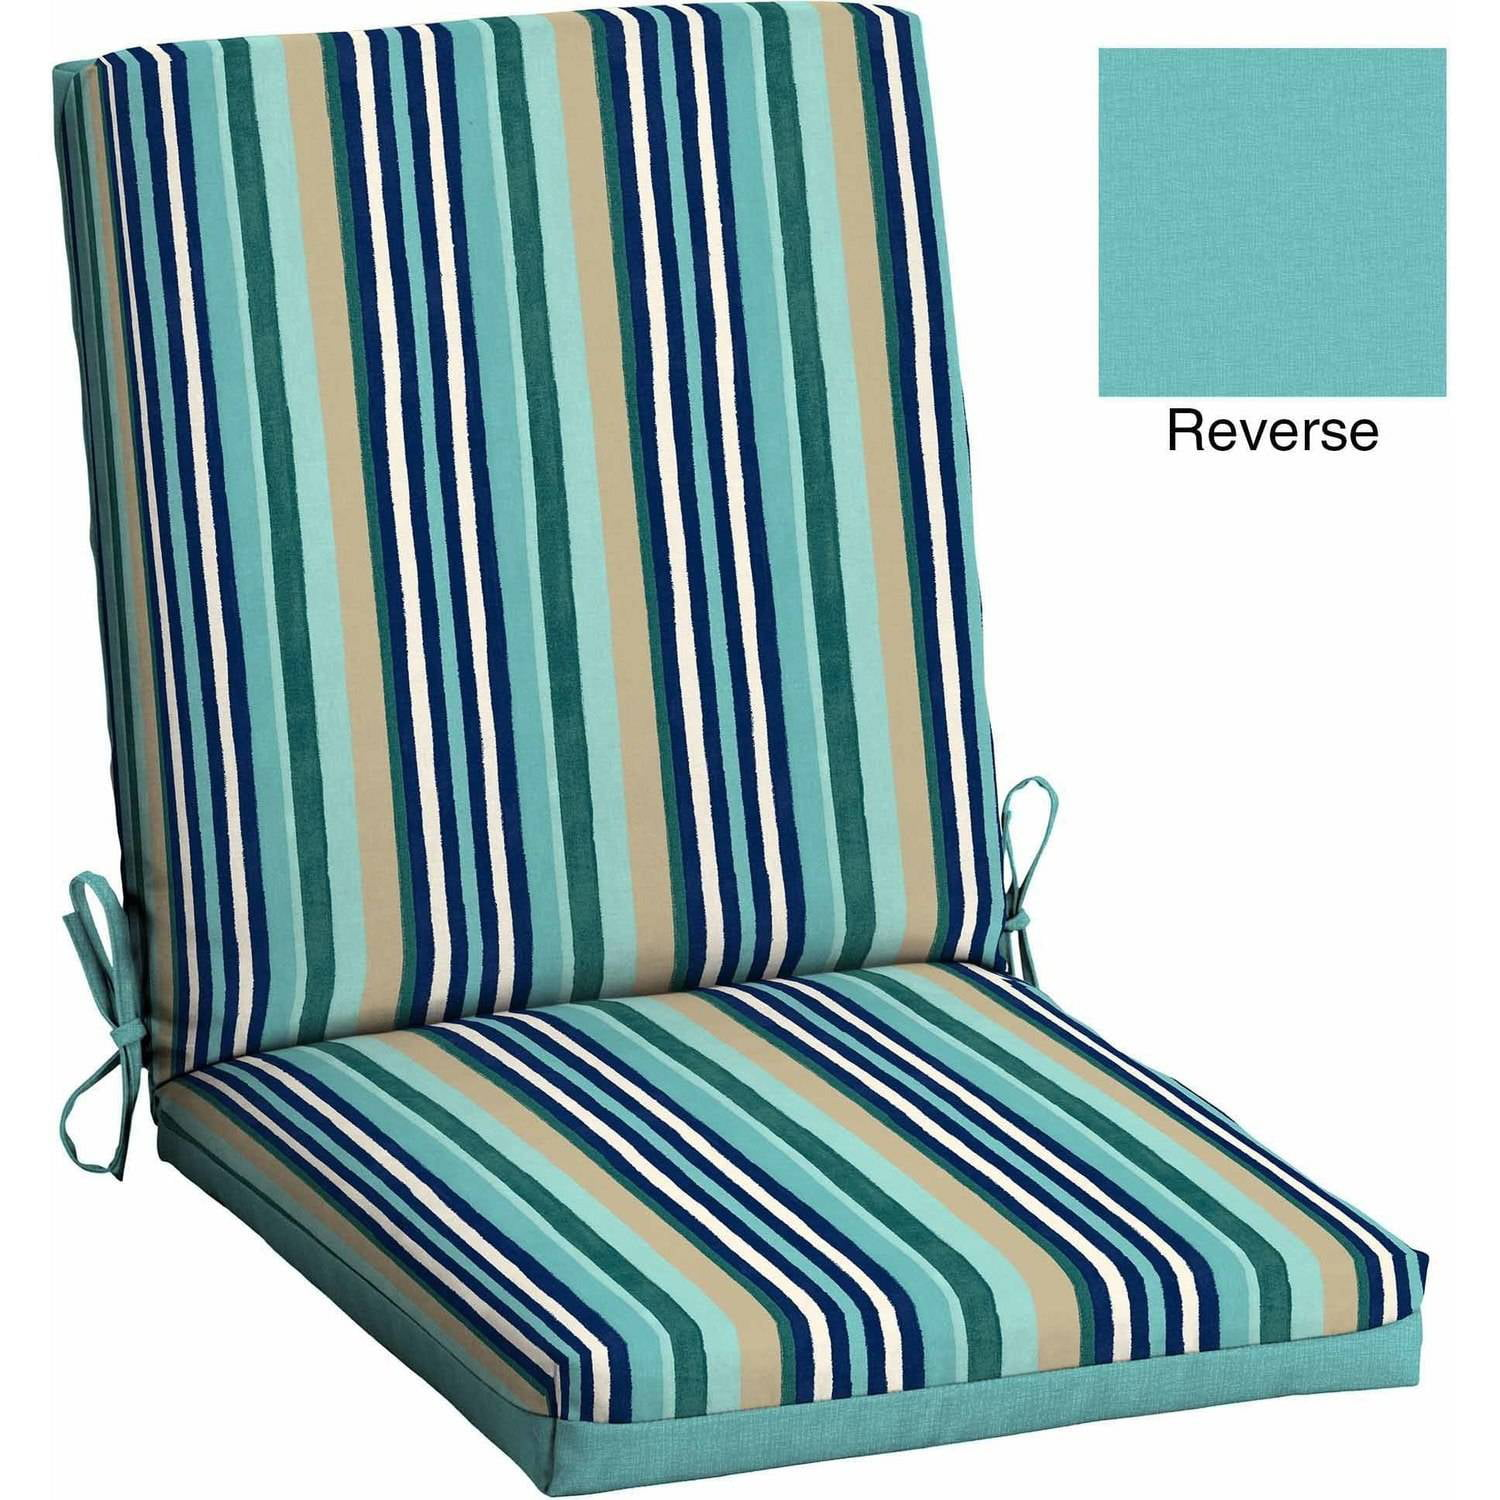 Mainstays Outdoor Patio Reversible Dining Chair Cushion  Turquoise StripeOutdoor Chair Cushions. Royal Blue Outdoor Seat Cushions. Home Design Ideas